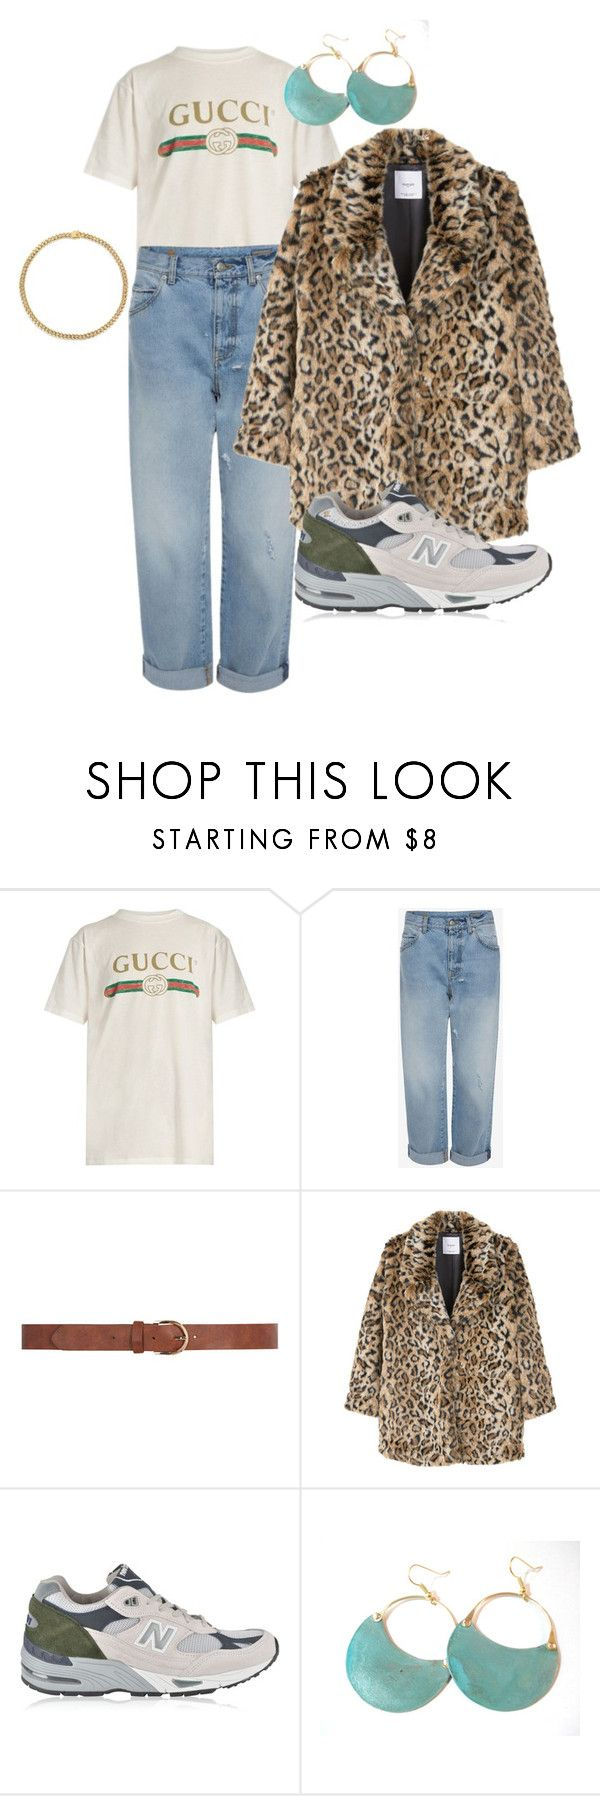 """""""Copenhagen Trends"""" by vintageloadies ❤ liked on Polyvore featuring Gucci, Dorothy Perkins, MANGO, New Balance and Sevil Designs"""